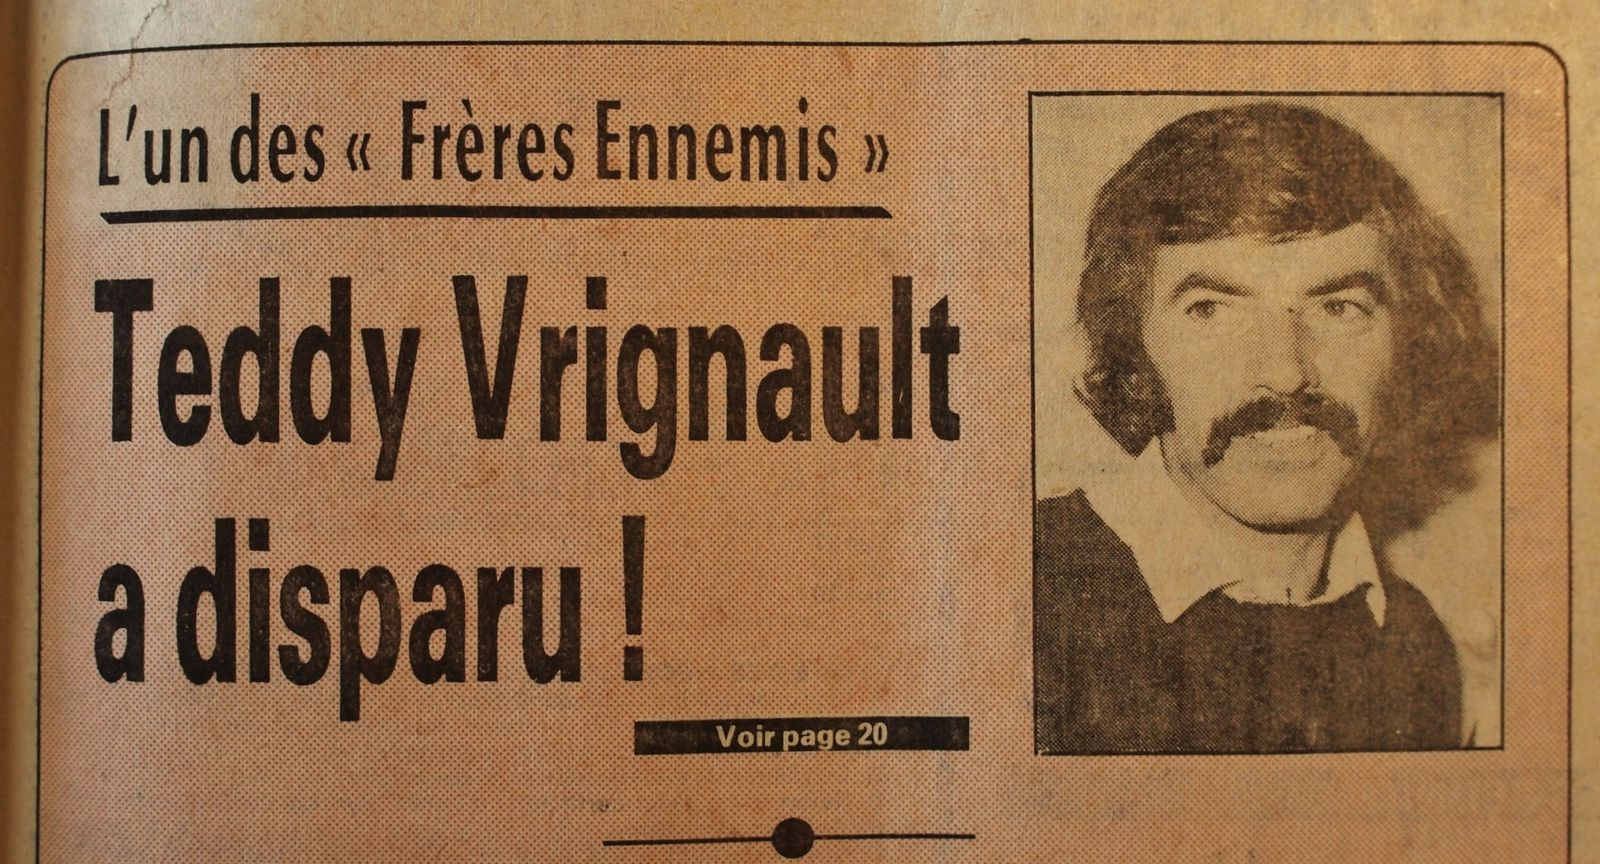 Disparition-Teddy-Vrignault-1984.JPG